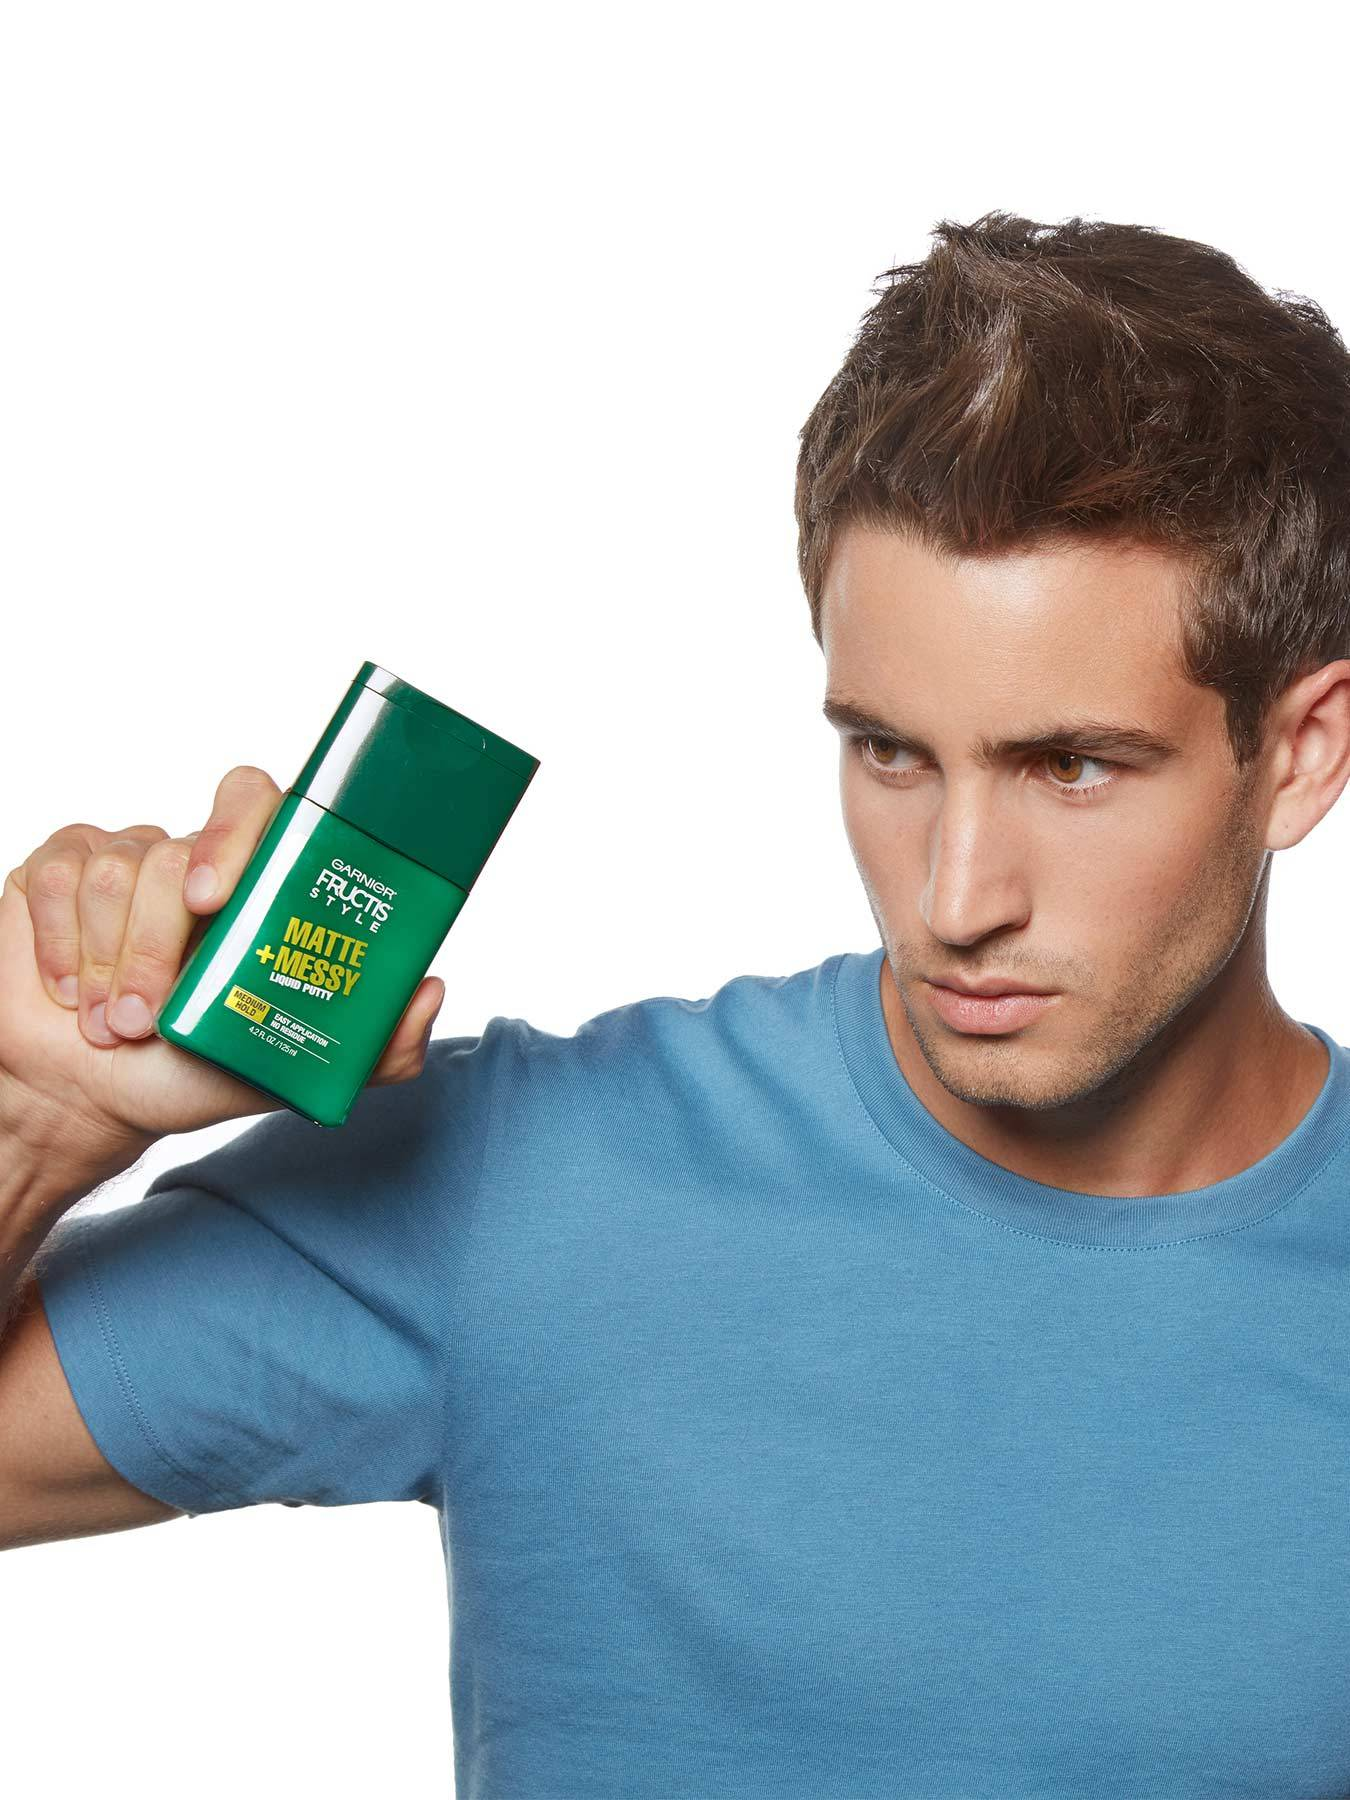 Model holding Matte and Messy Liquid Hair Putty for Men, No Drying Alcohol.